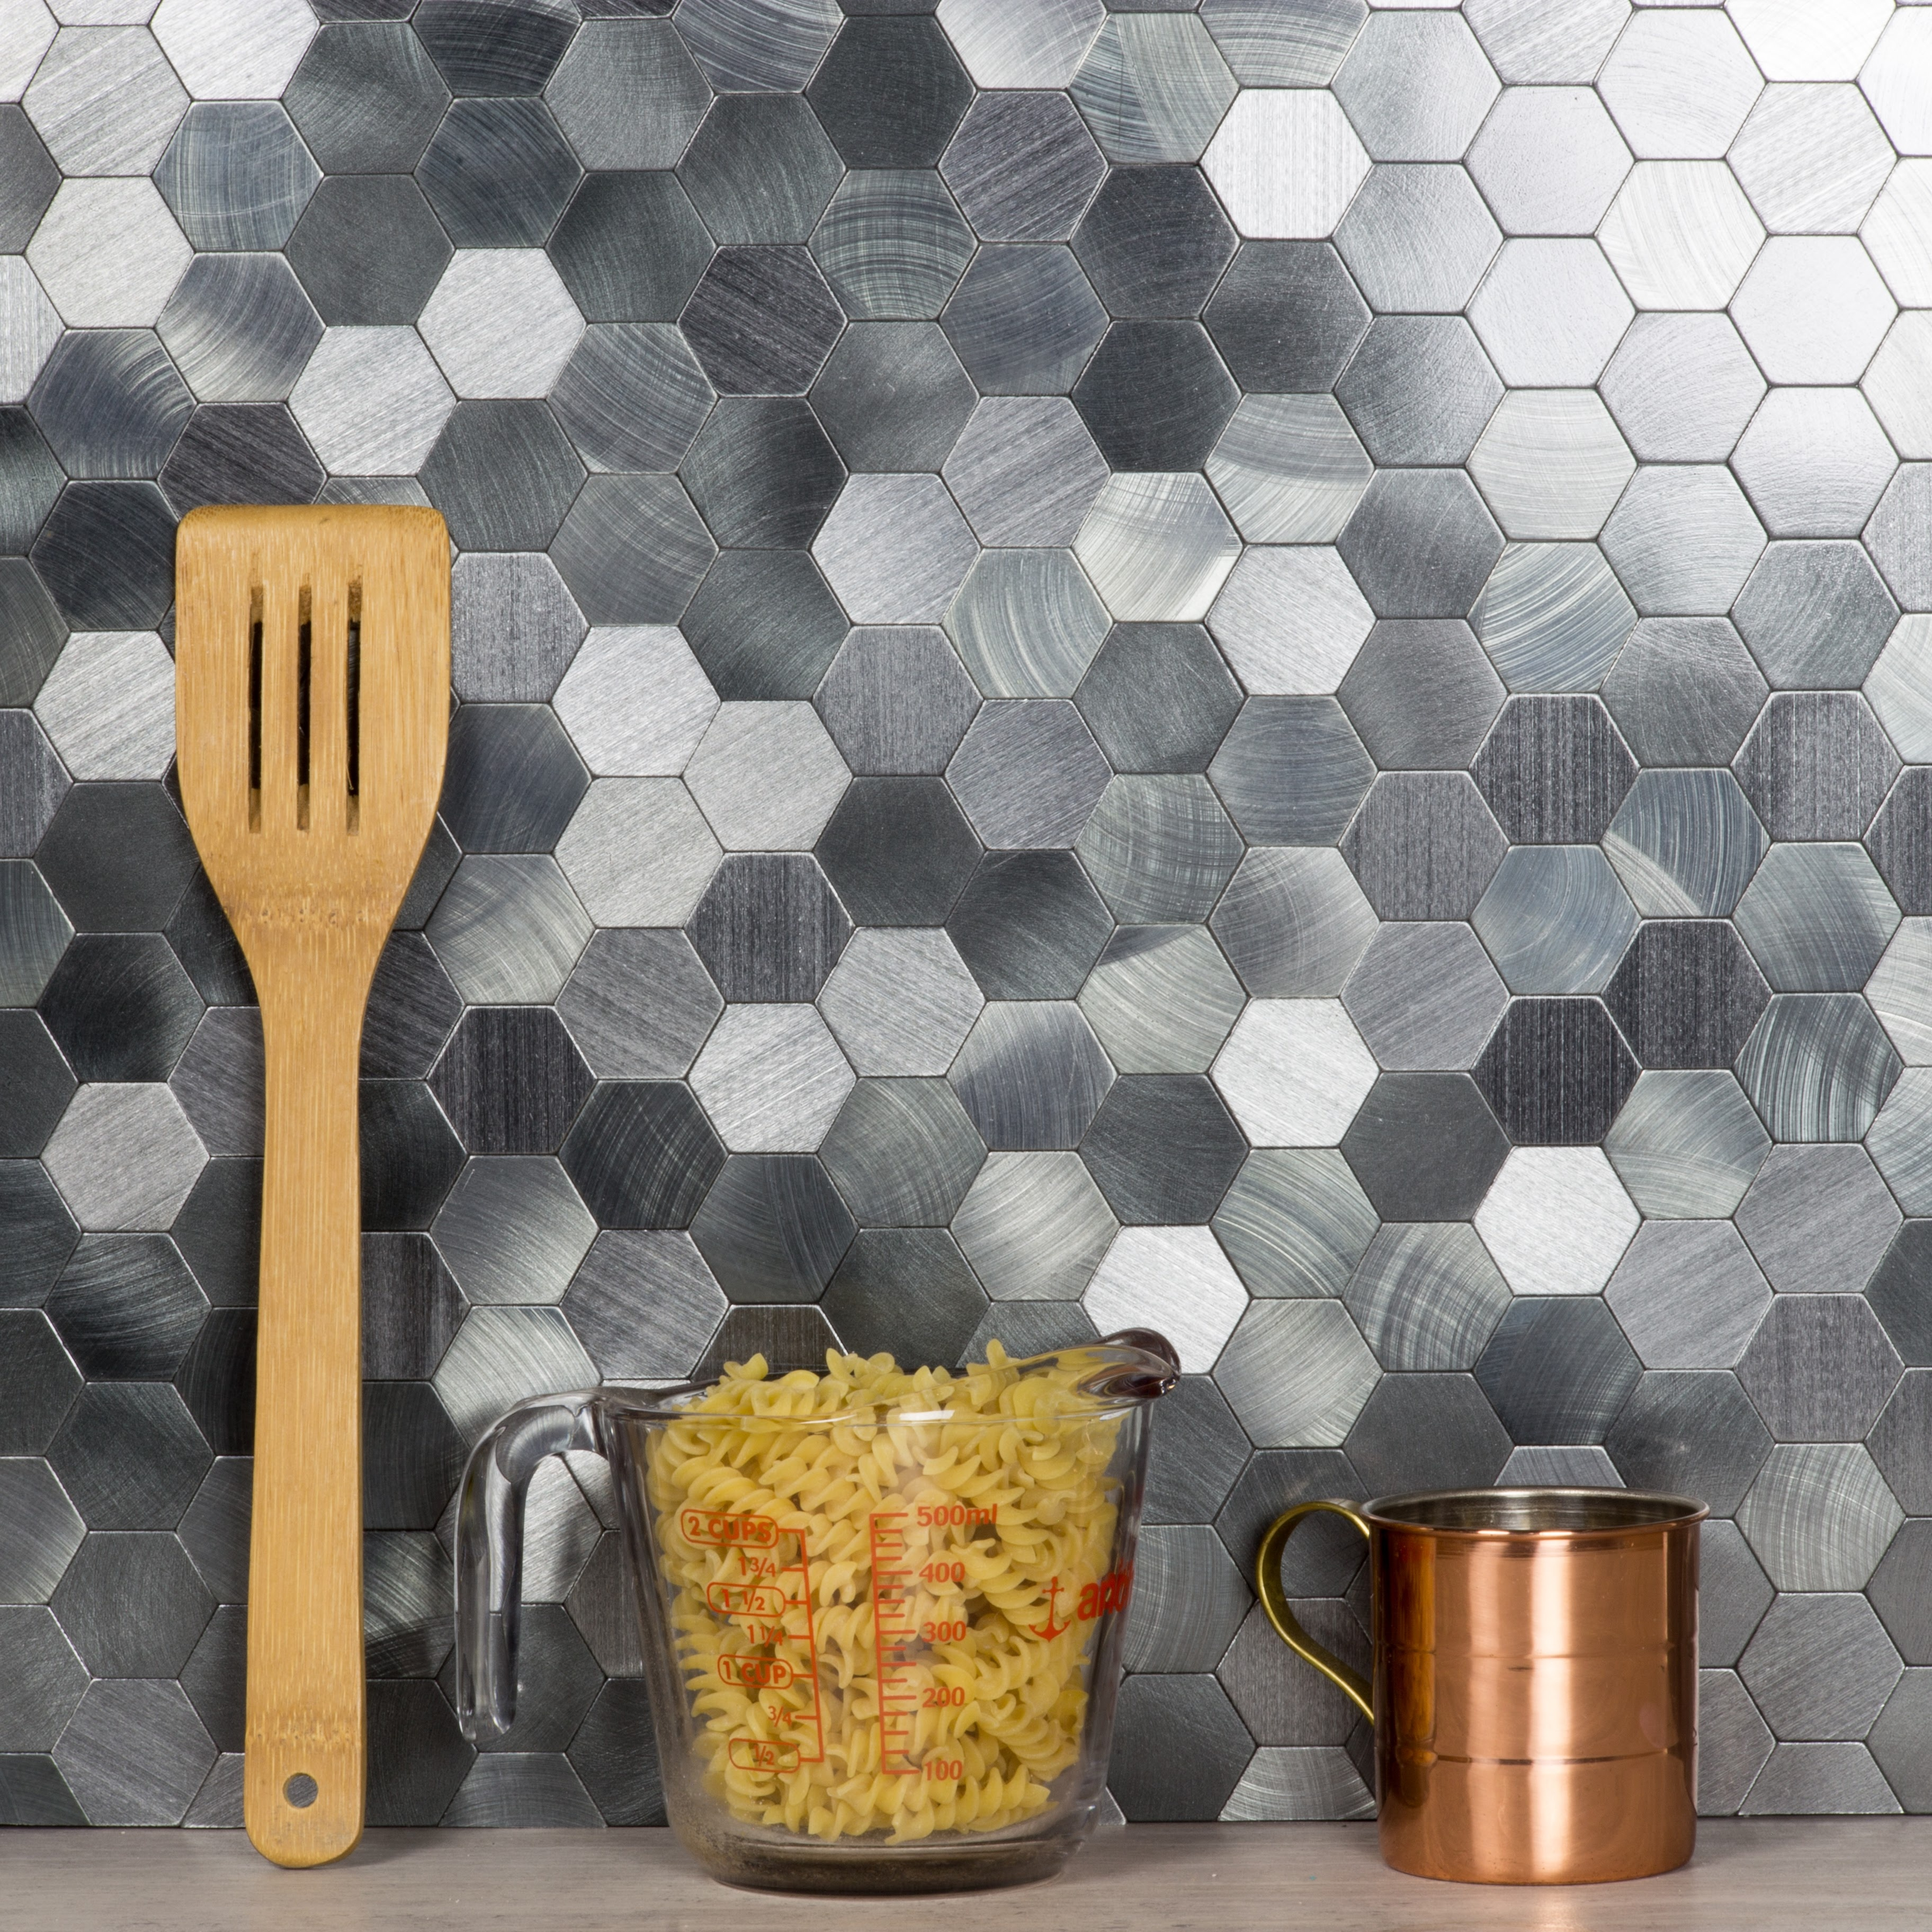 Enchanted Metals 1.3125 in x 1.3125 in Aluminum Hexagon Mosaic in SILVER Brushed